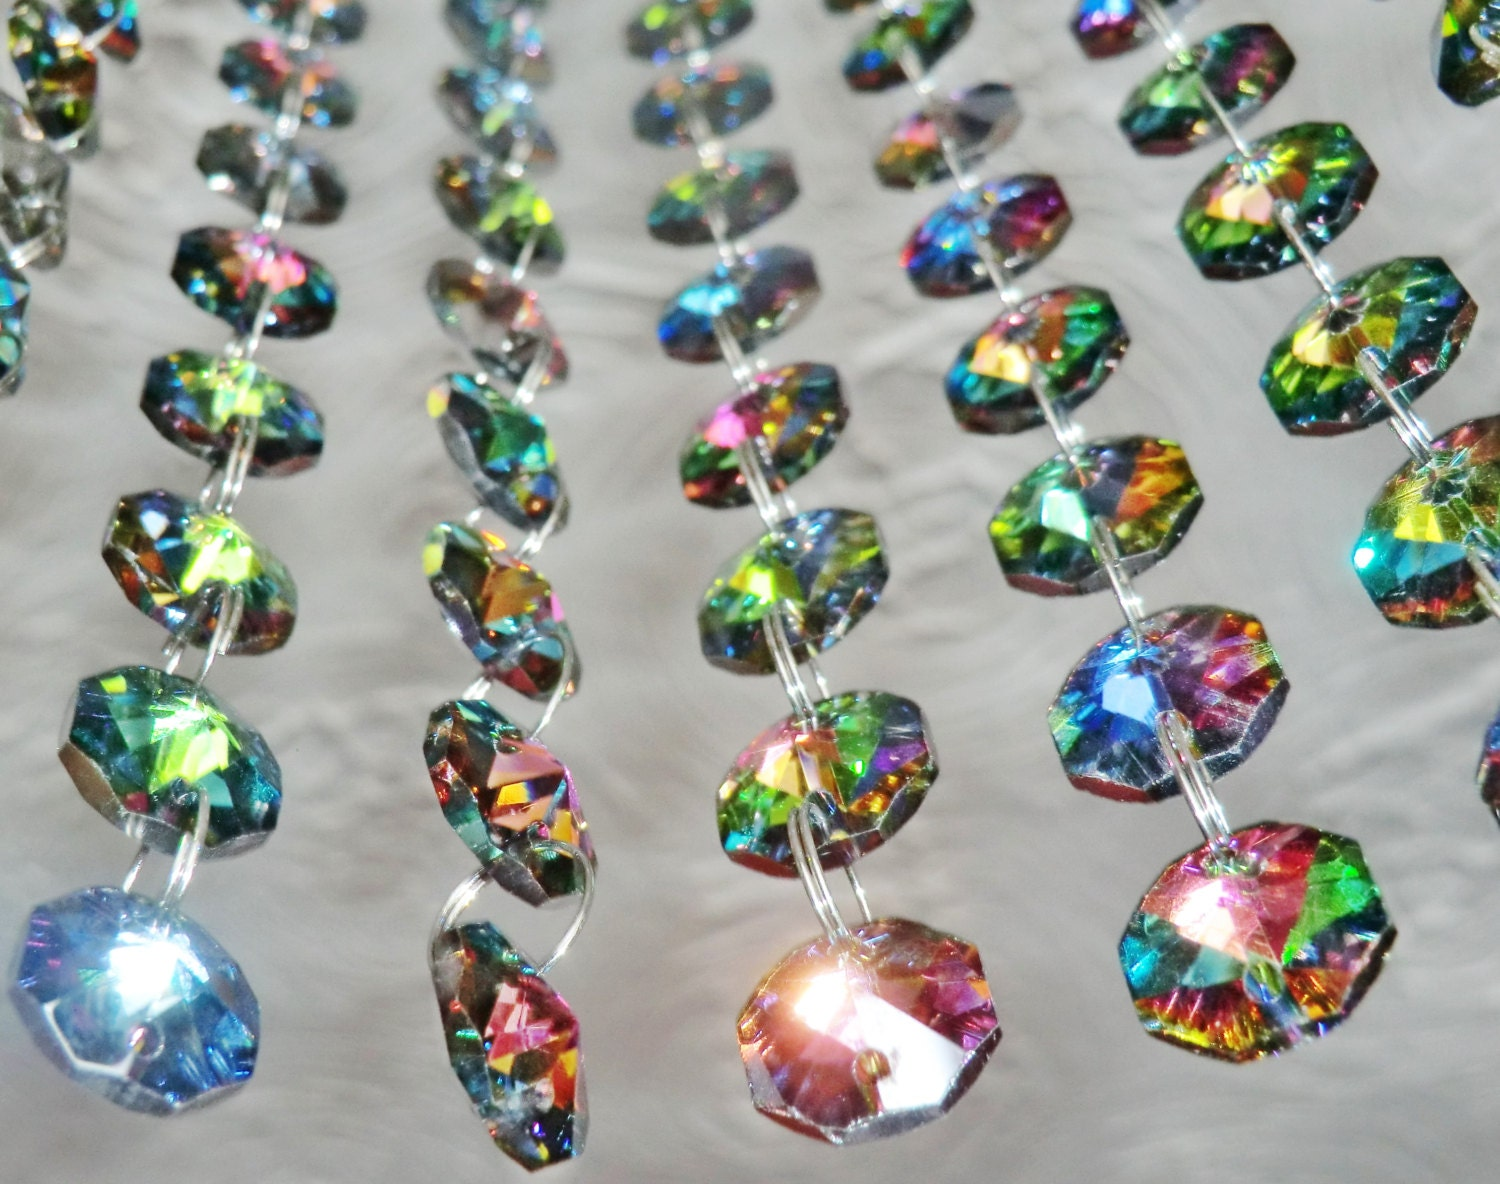 14mm Octagon Vitrail AB Chandelier Prisms Drops Glass Crystals ...